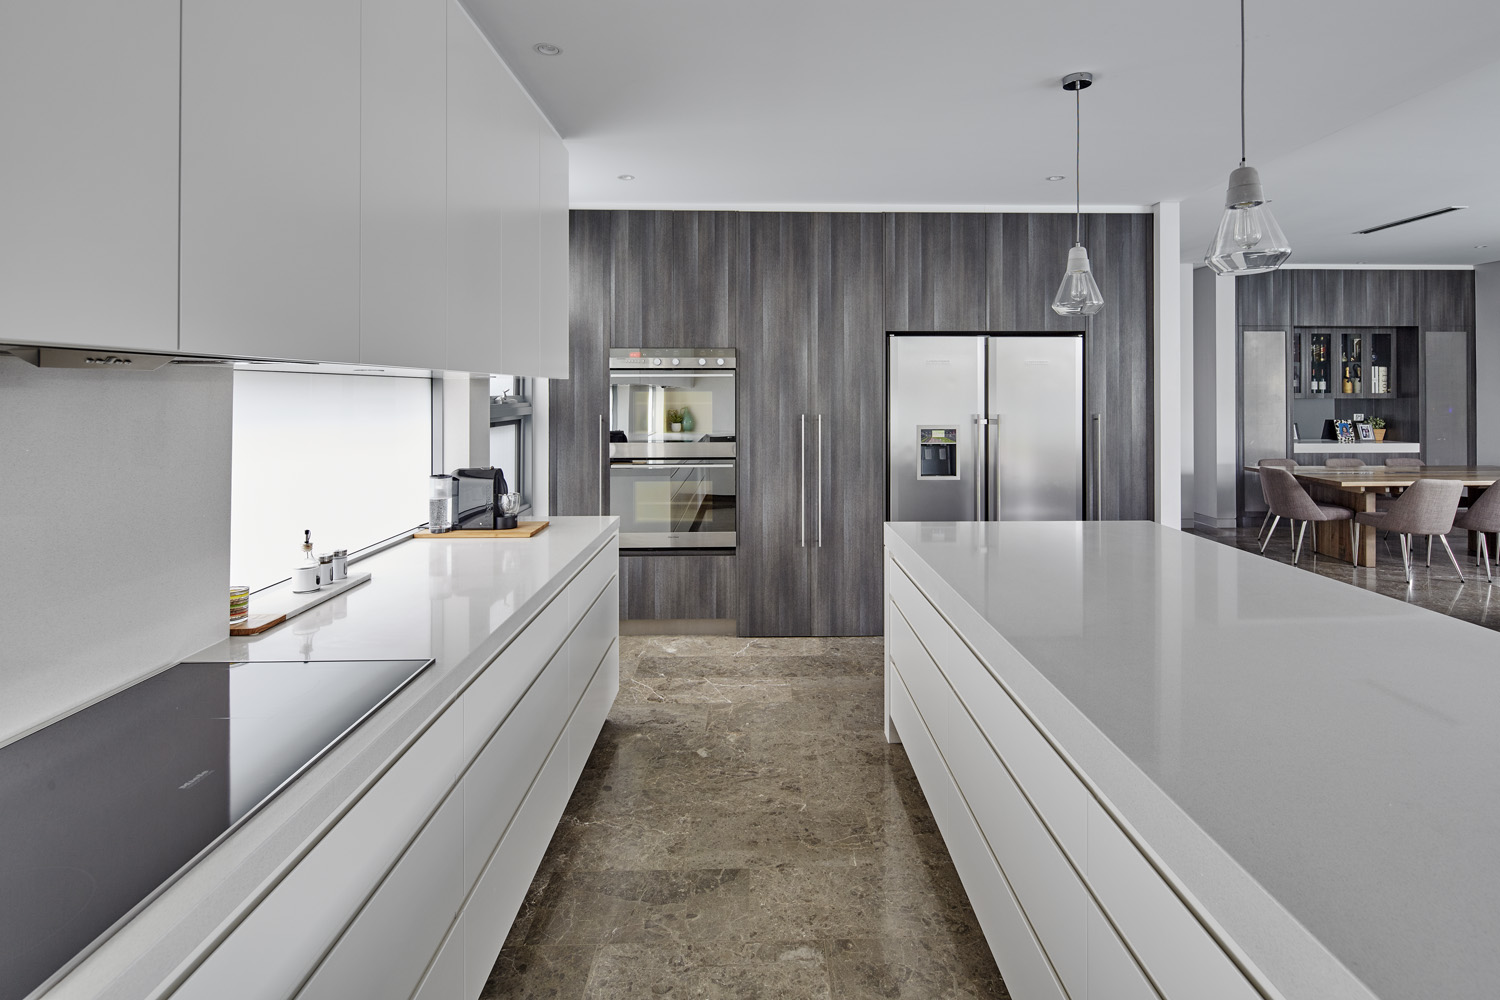 We love: The grey marble flooring which adds a luxurious touch to the space